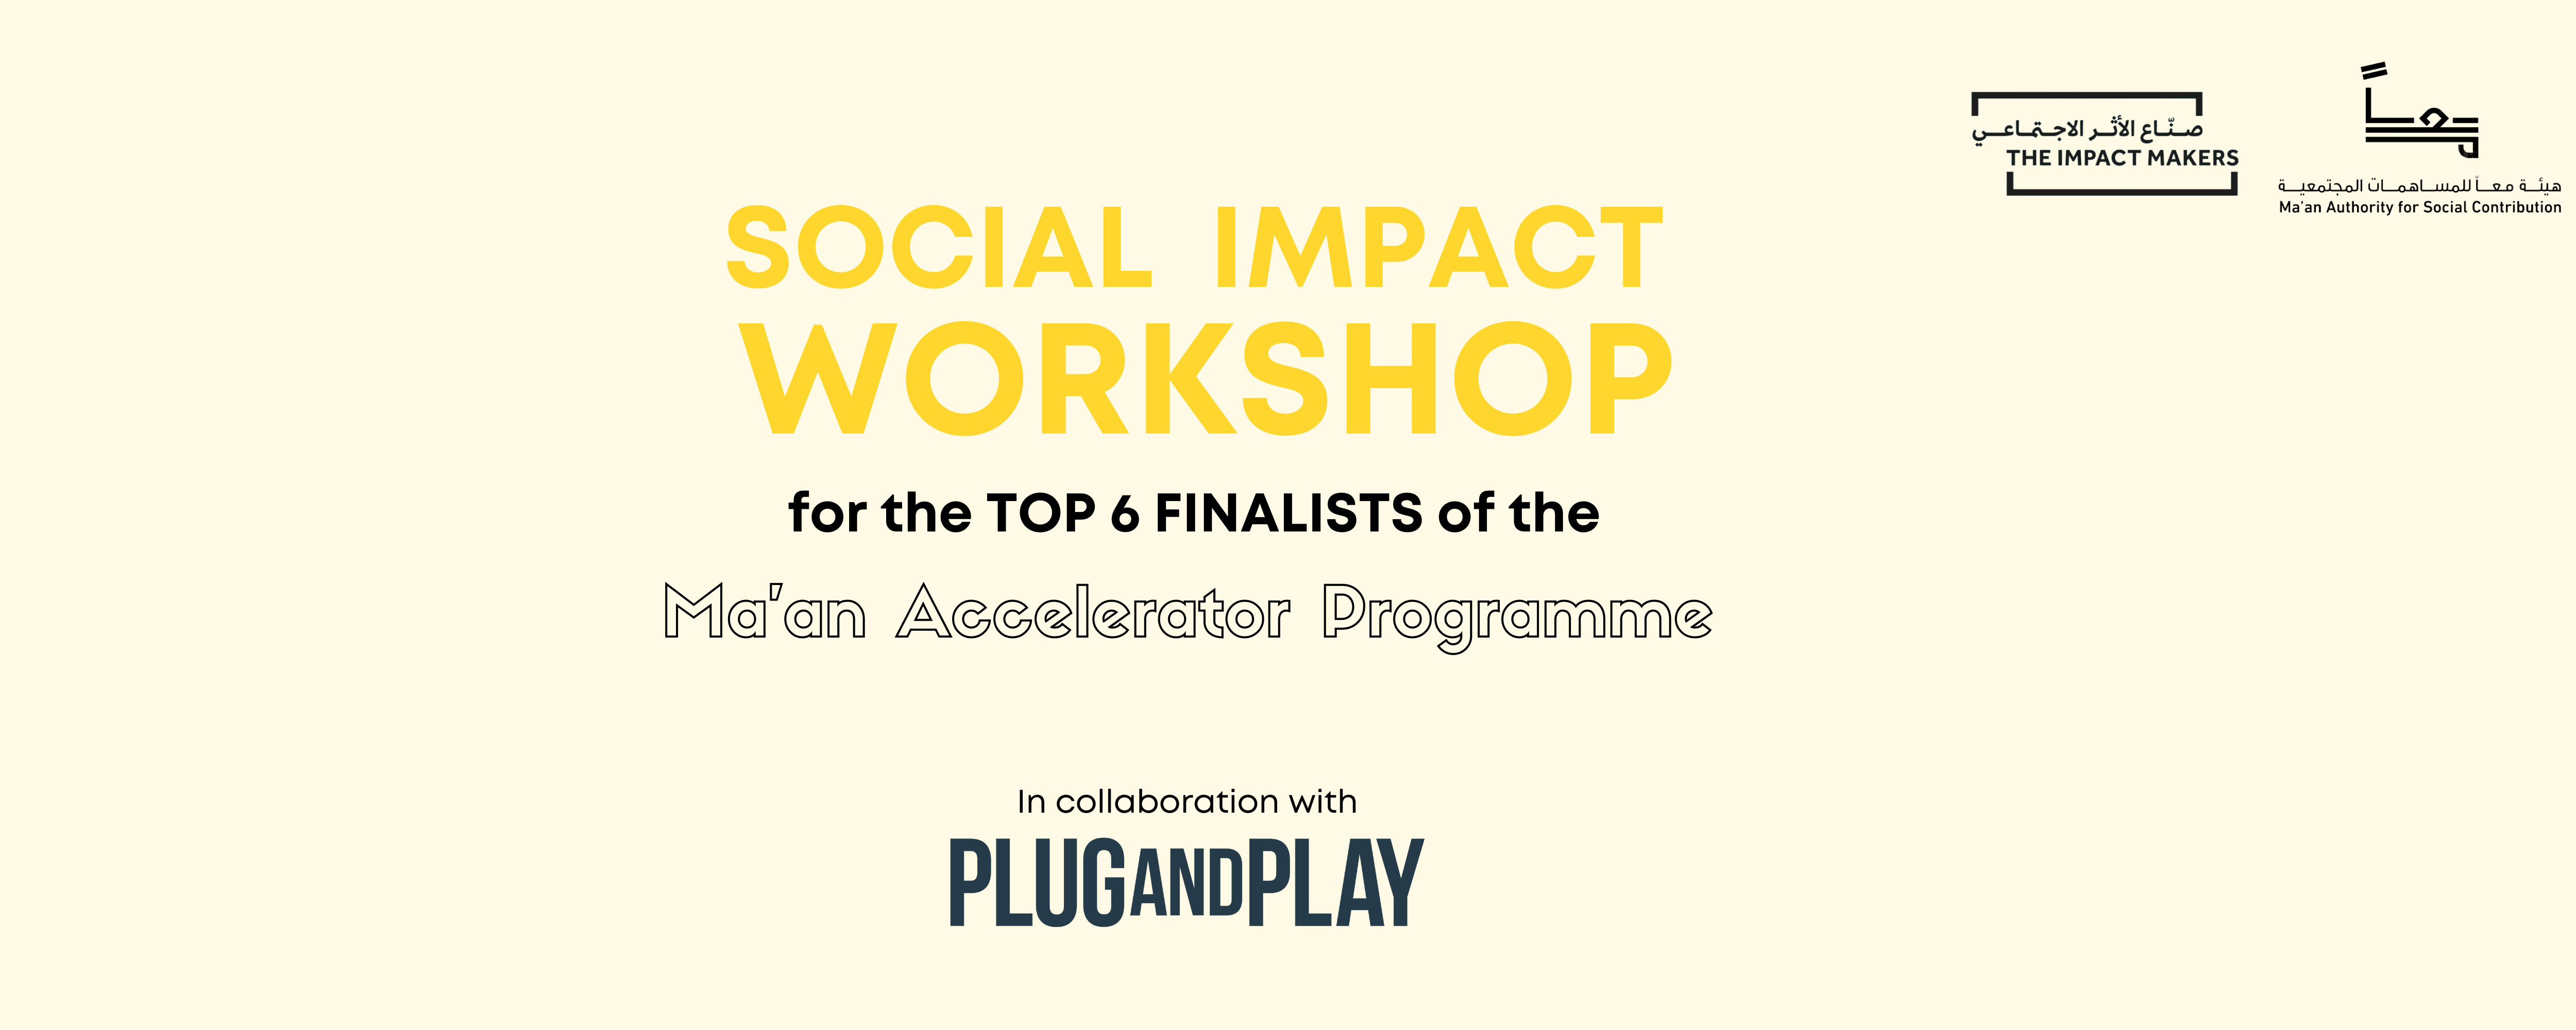 C3 partners with Plug and Play for a Social Impact Workshop